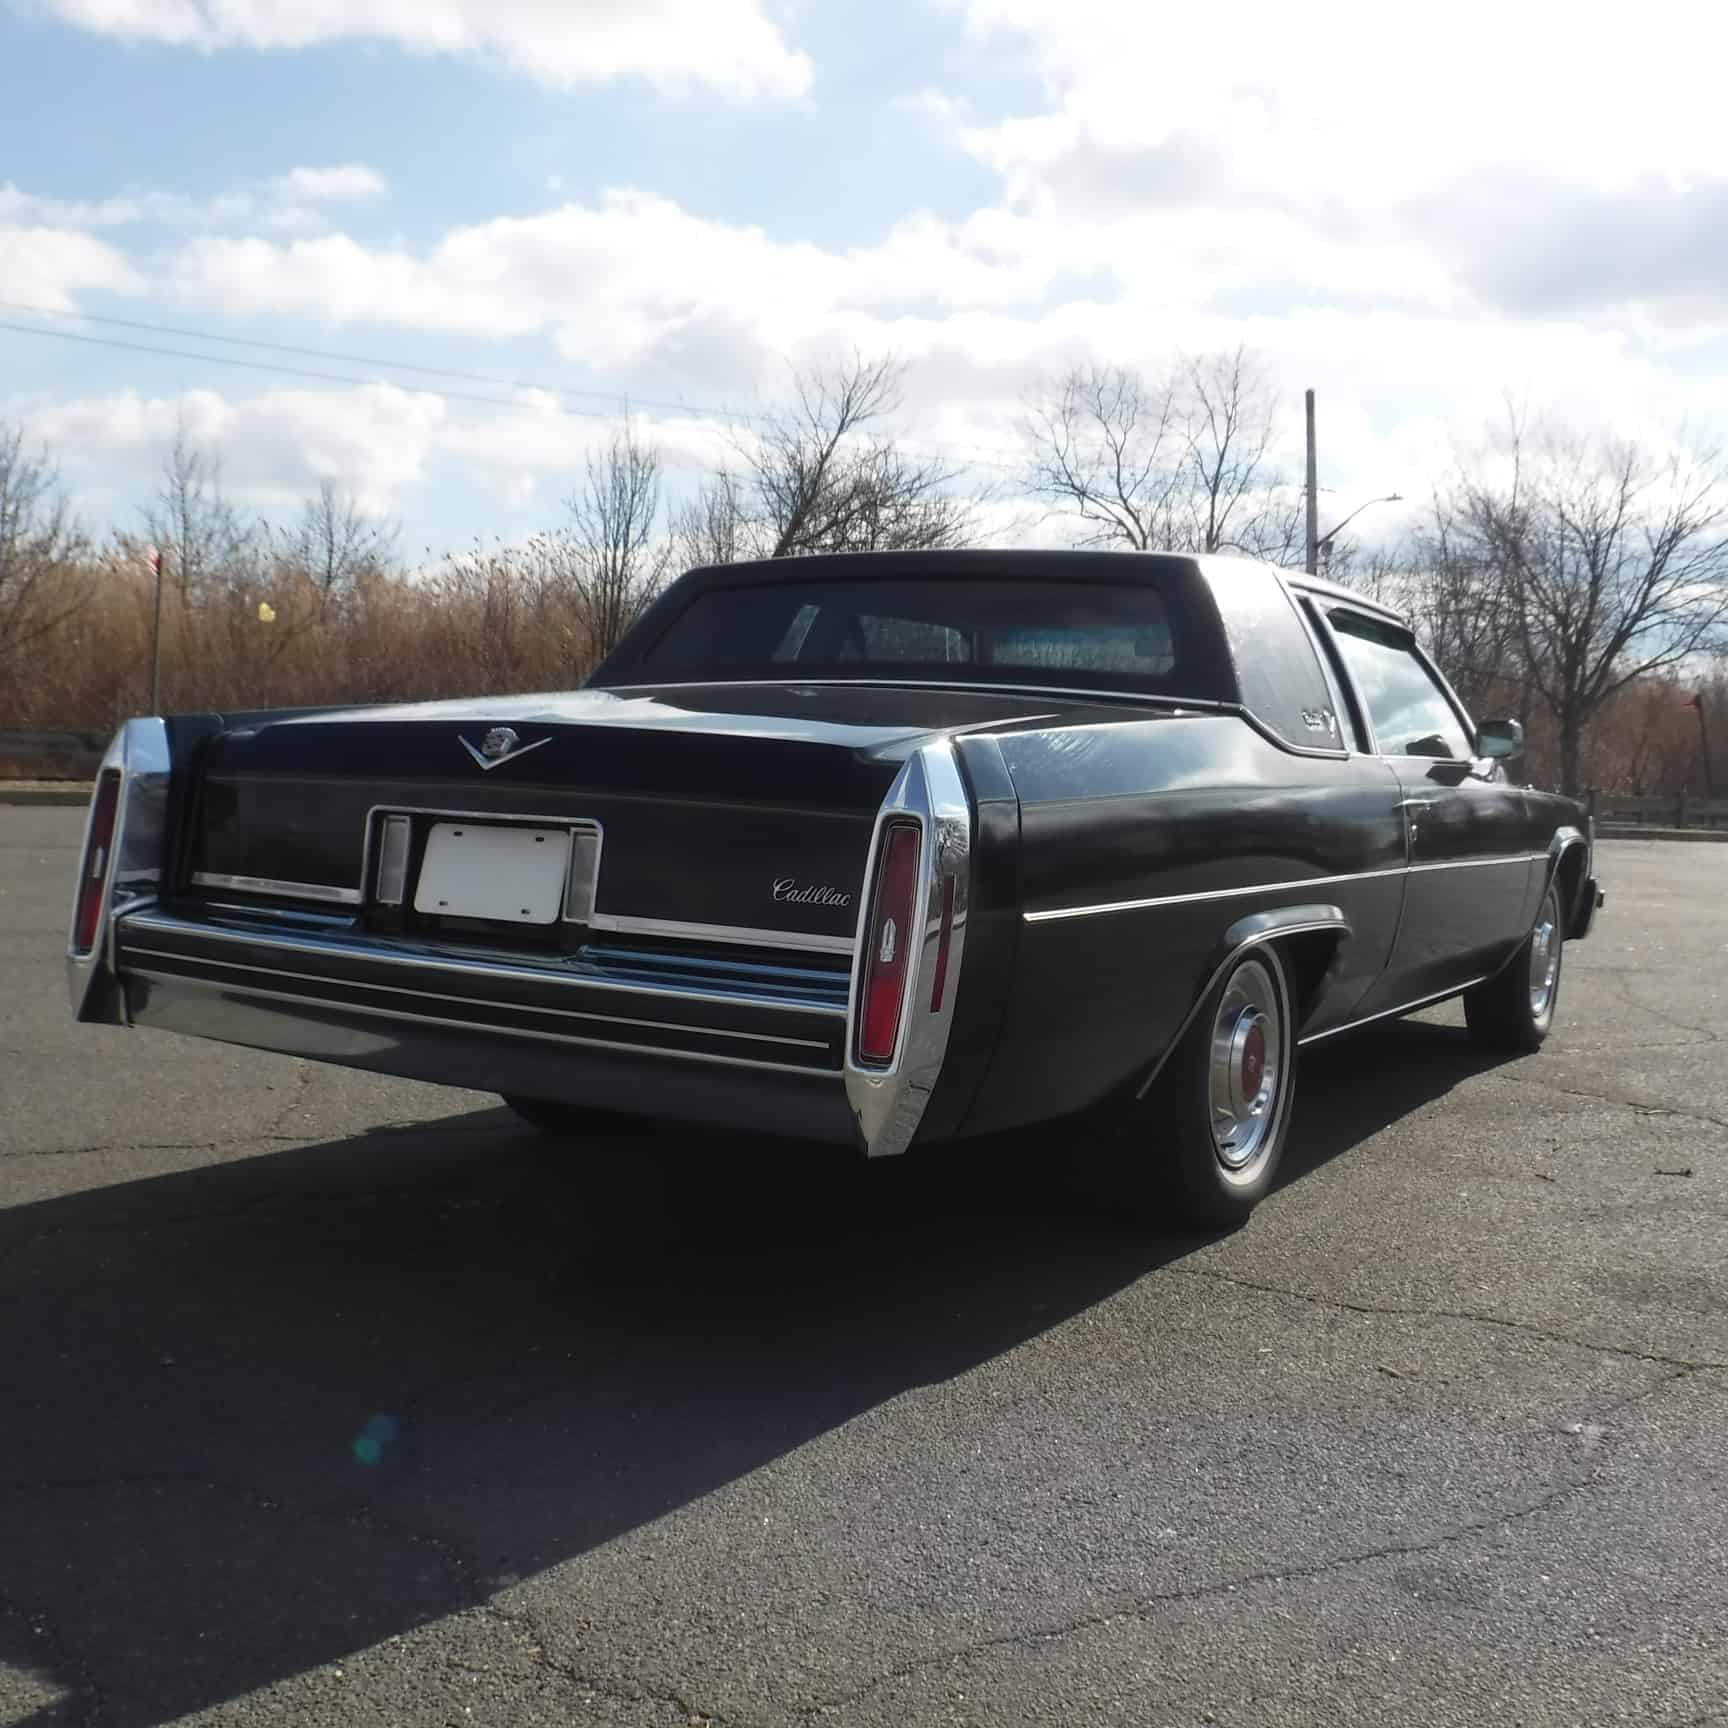 Reserved Parking 11: 1980 Cadillac Coupe DeVille 21K Mile